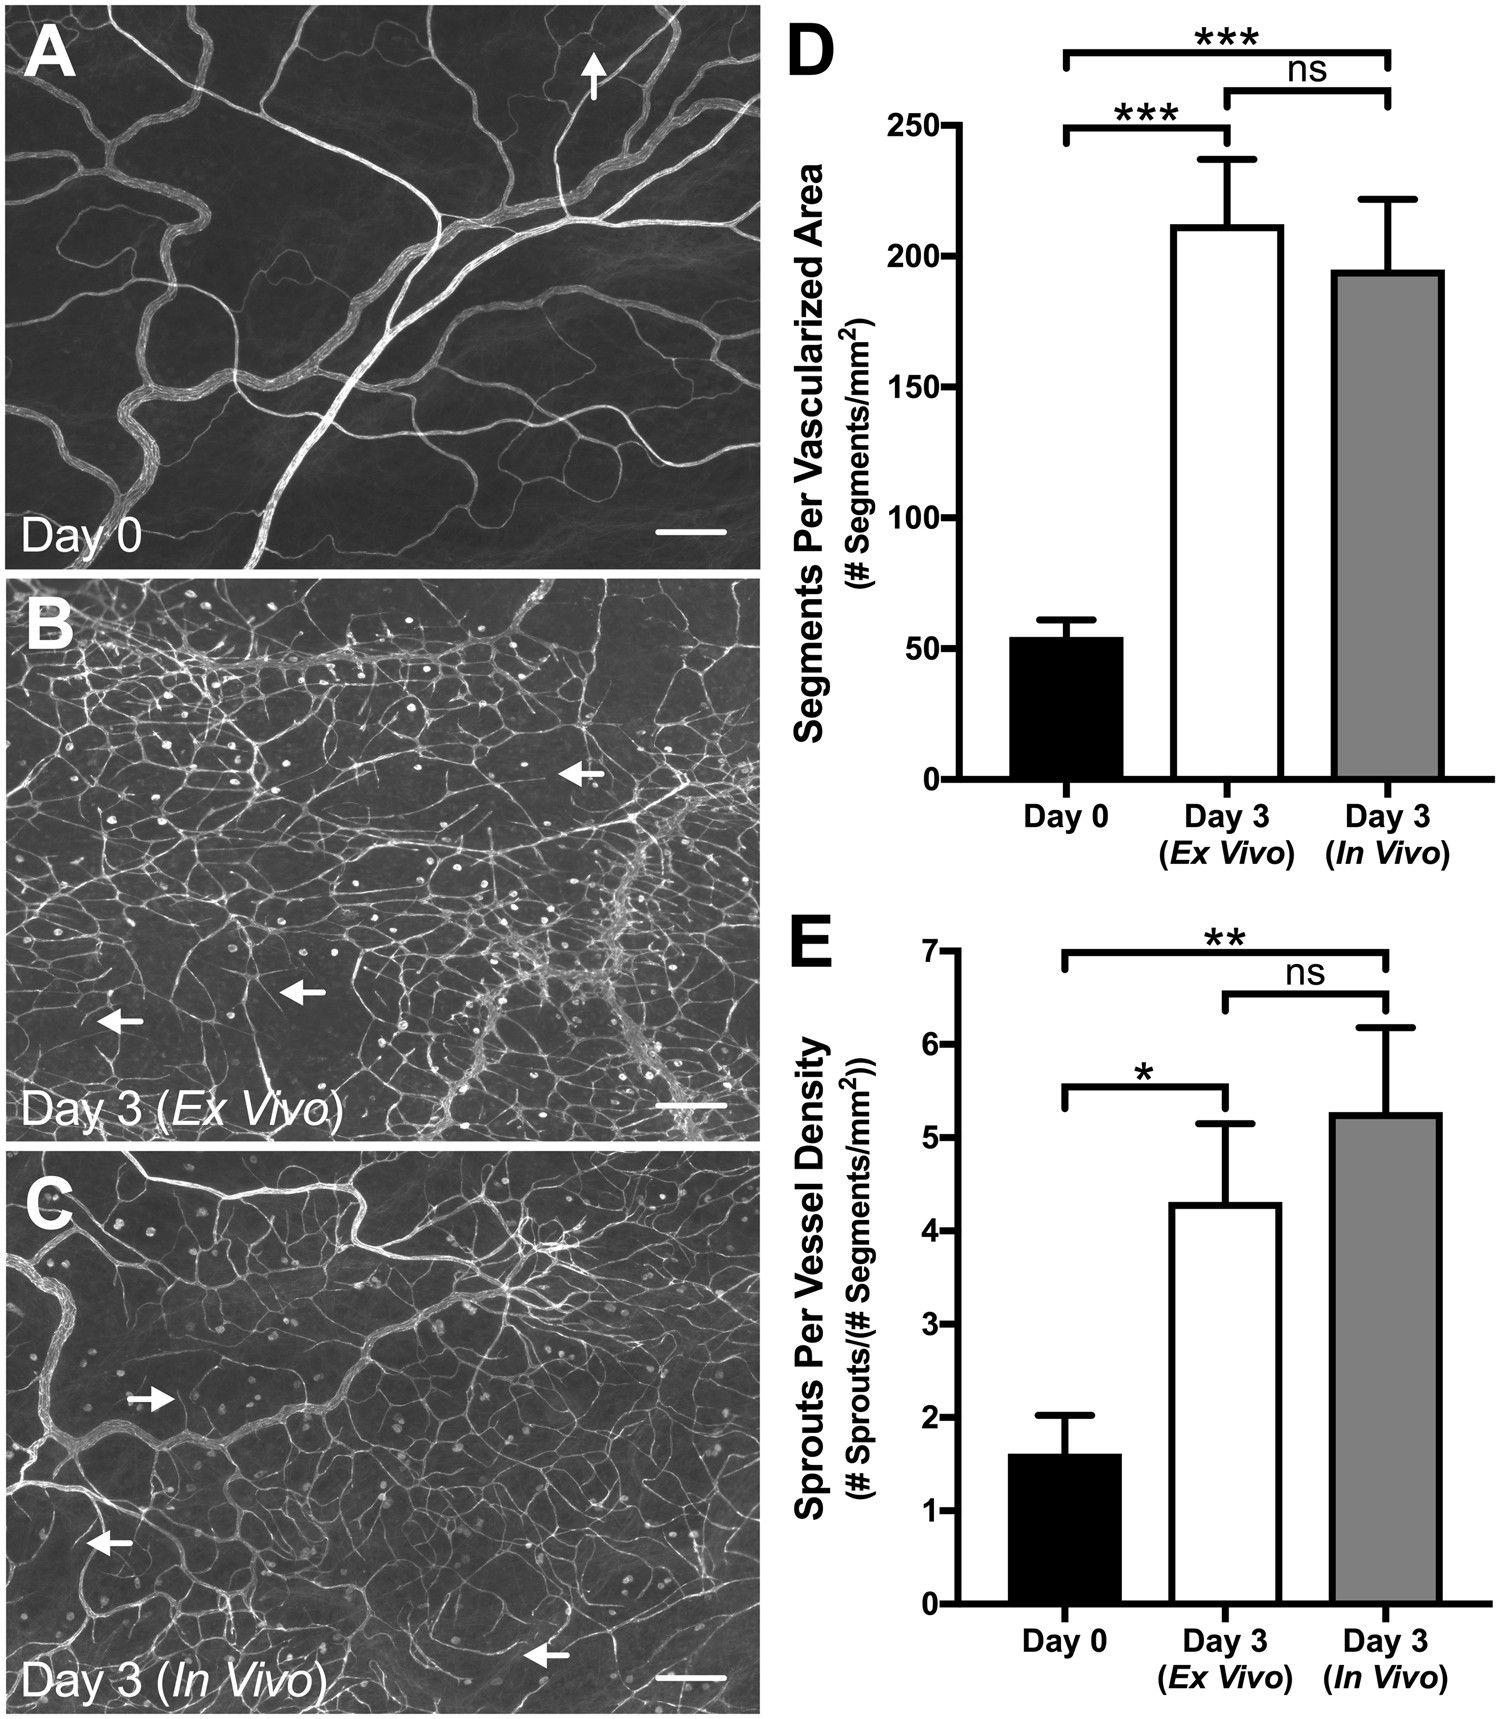 Endothelial Cell Phenotypes are Maintained During